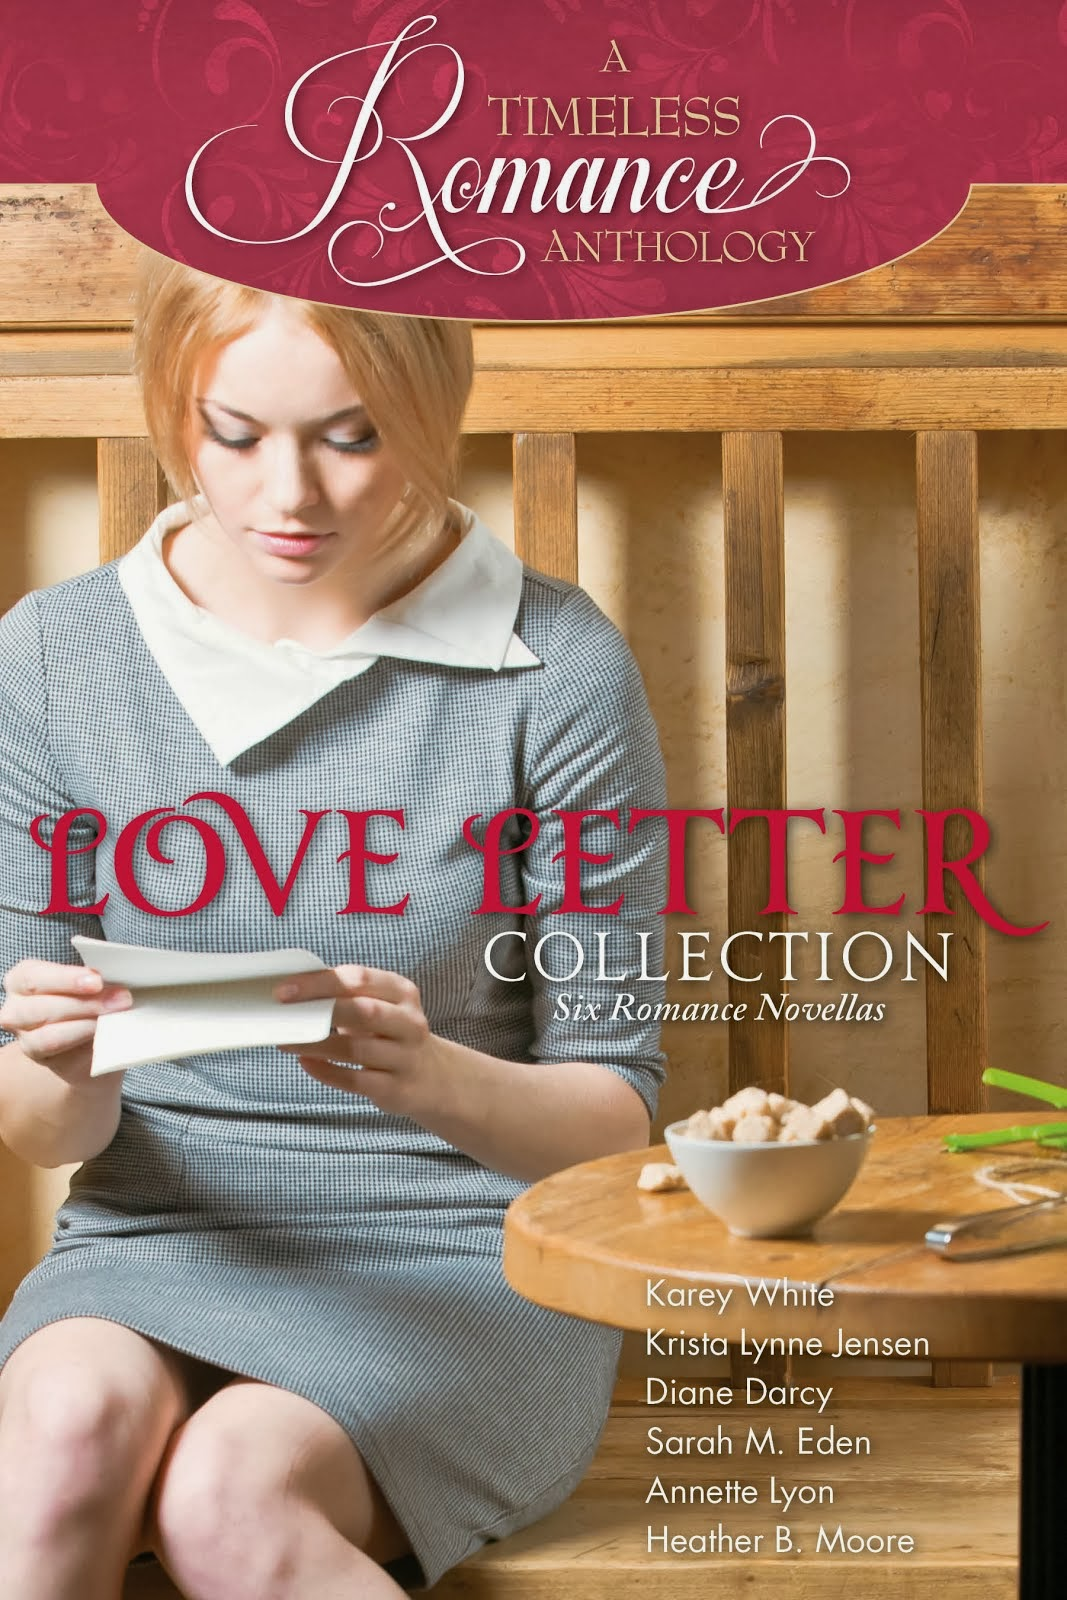 Newest Release! Love Letter Collection